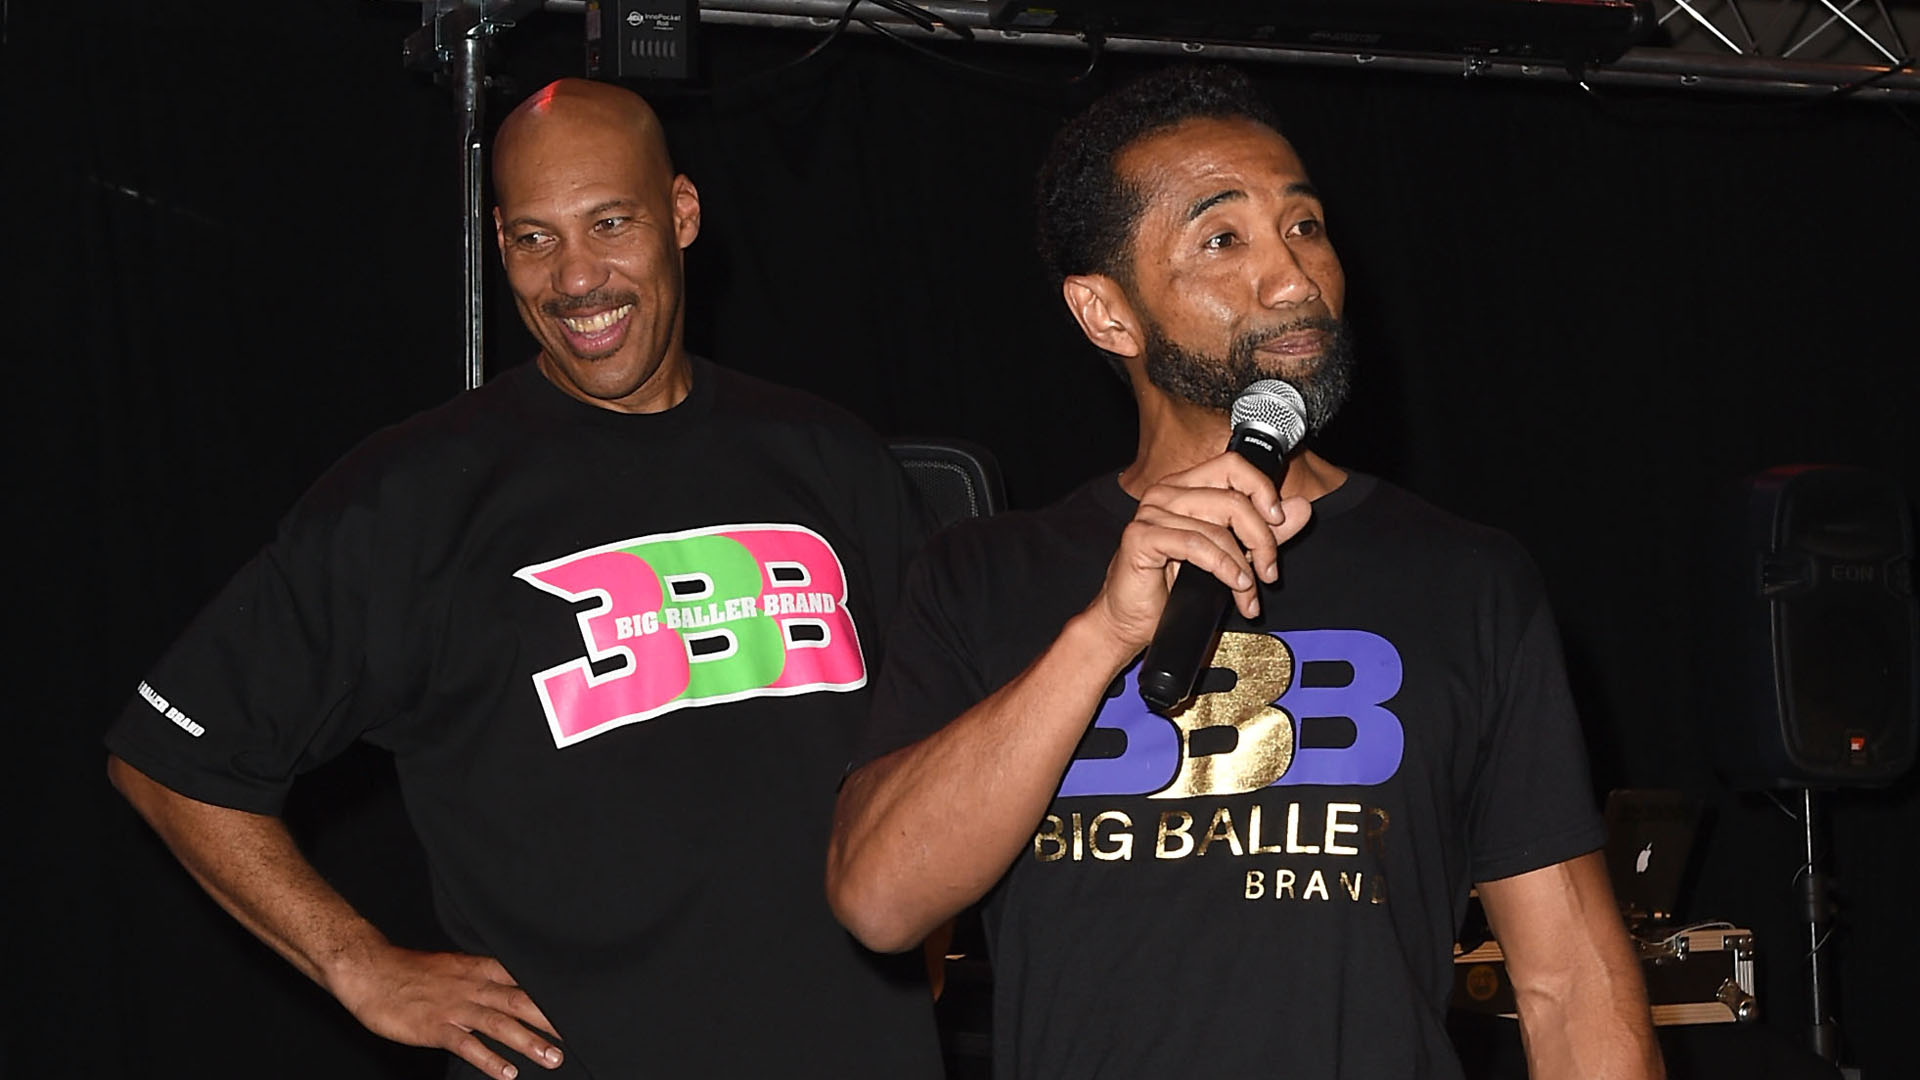 Lonzo Ball cuts ties with Big Baller Brand co-owner after $1.5M goes missing, report says